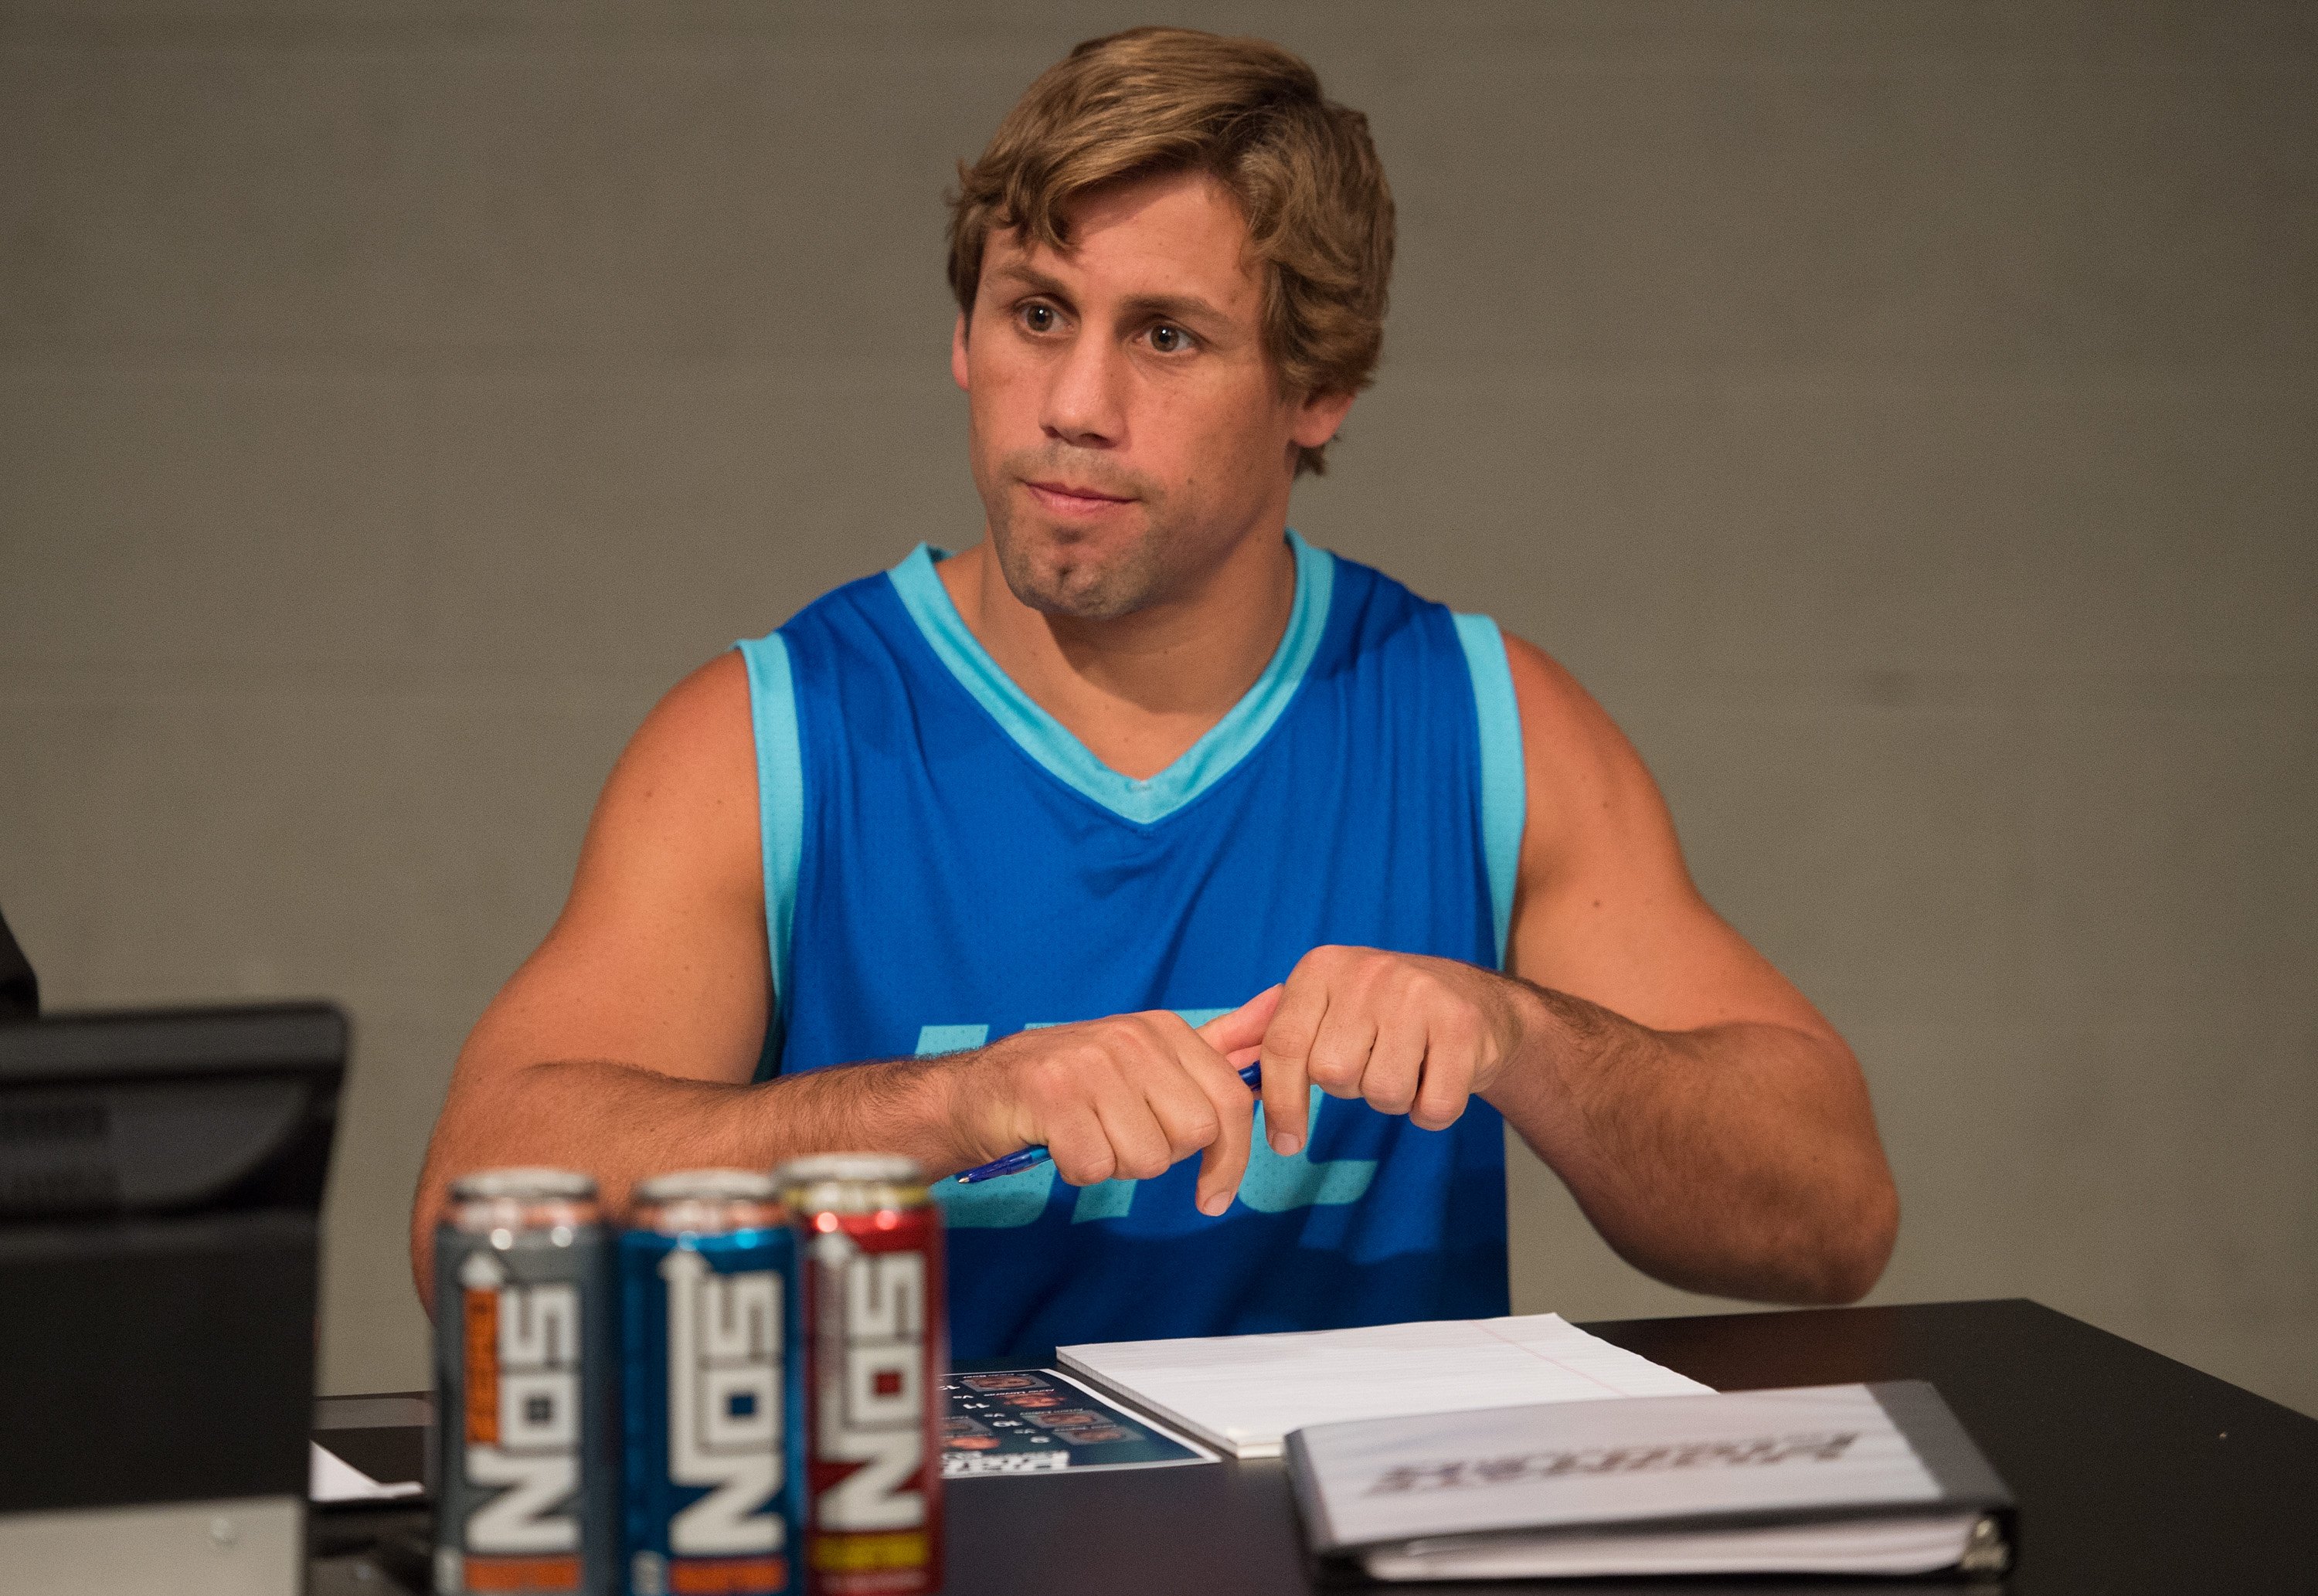 Urijah Faber prepares to watch the elimination fights. (Photo by Brandon Magnus/Zuffa LLC)